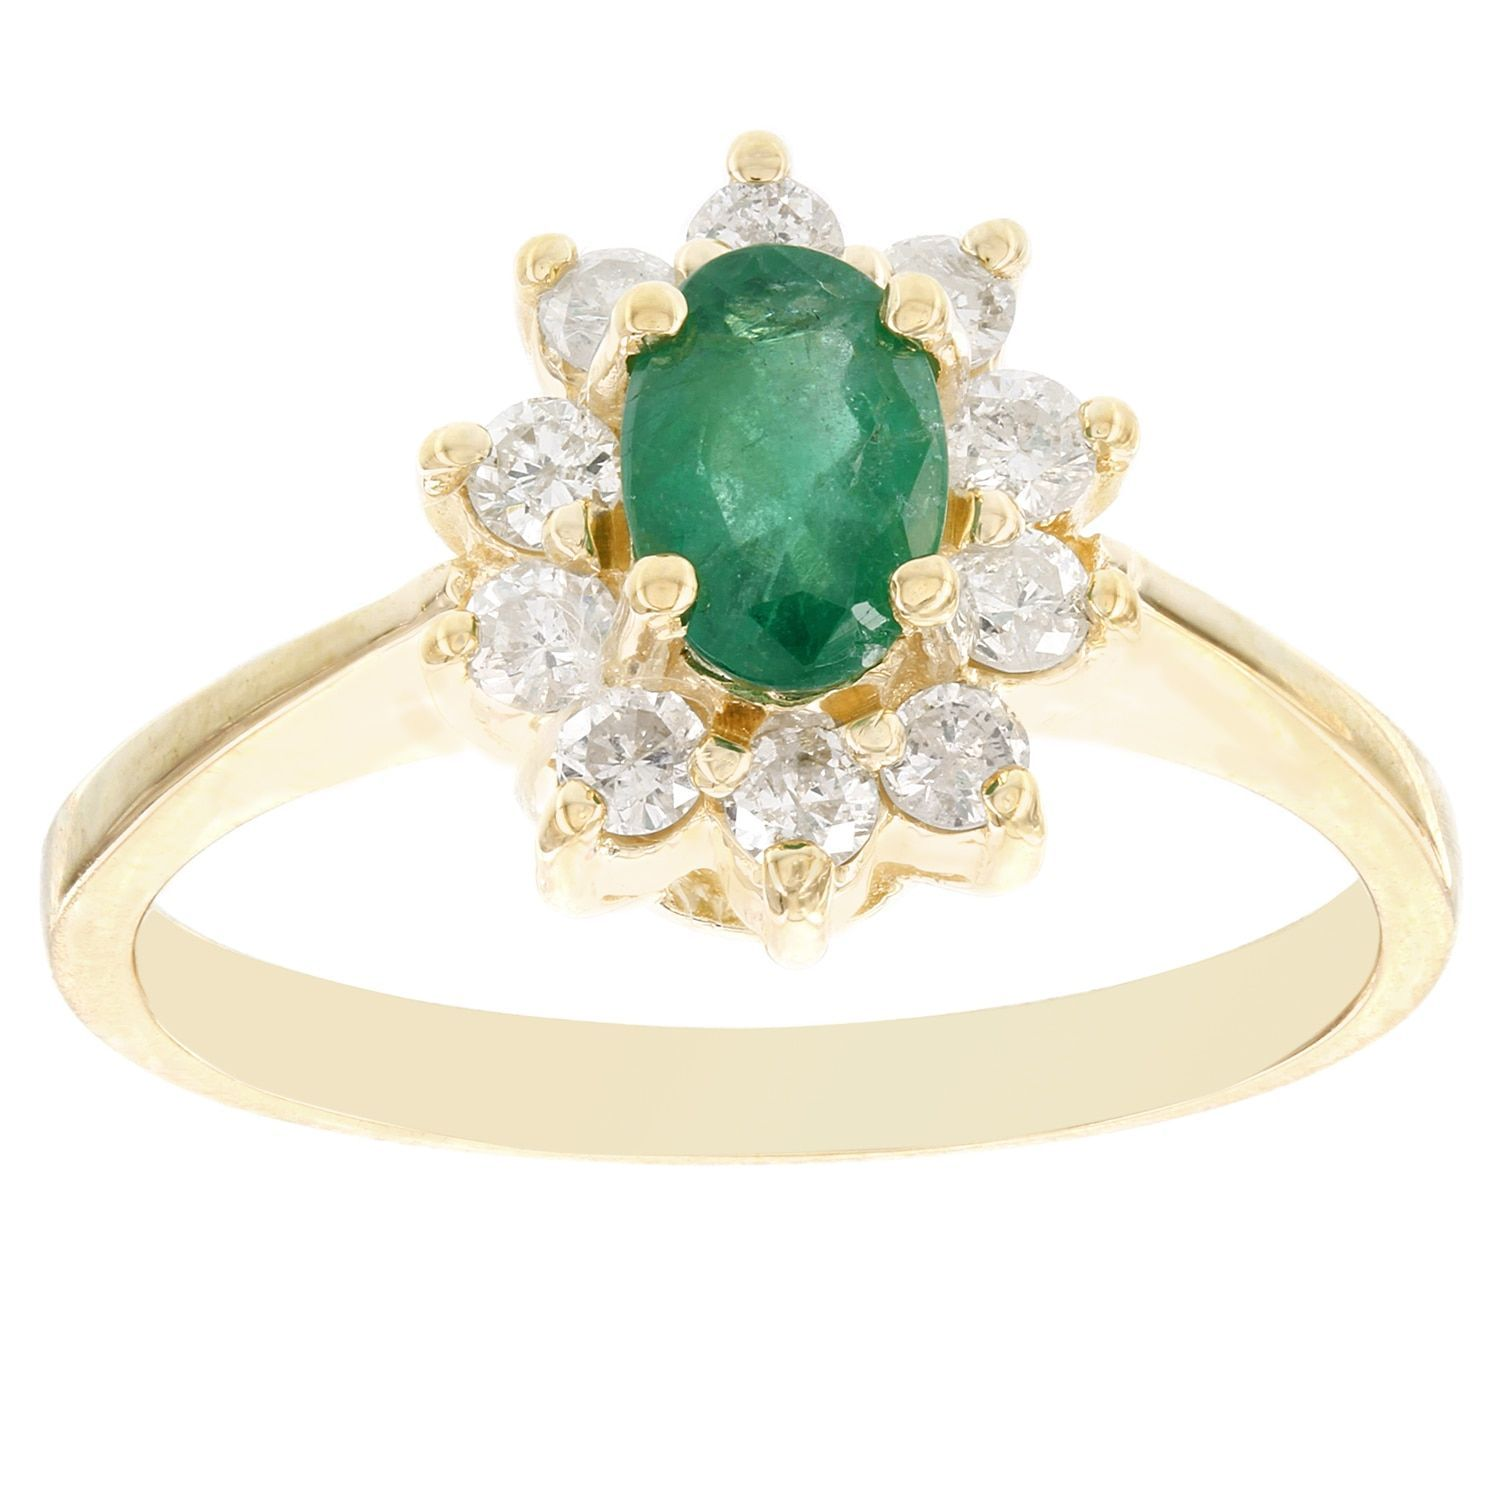 rings engagement bridal gemstone emerald beautiful green fashion wedding unique